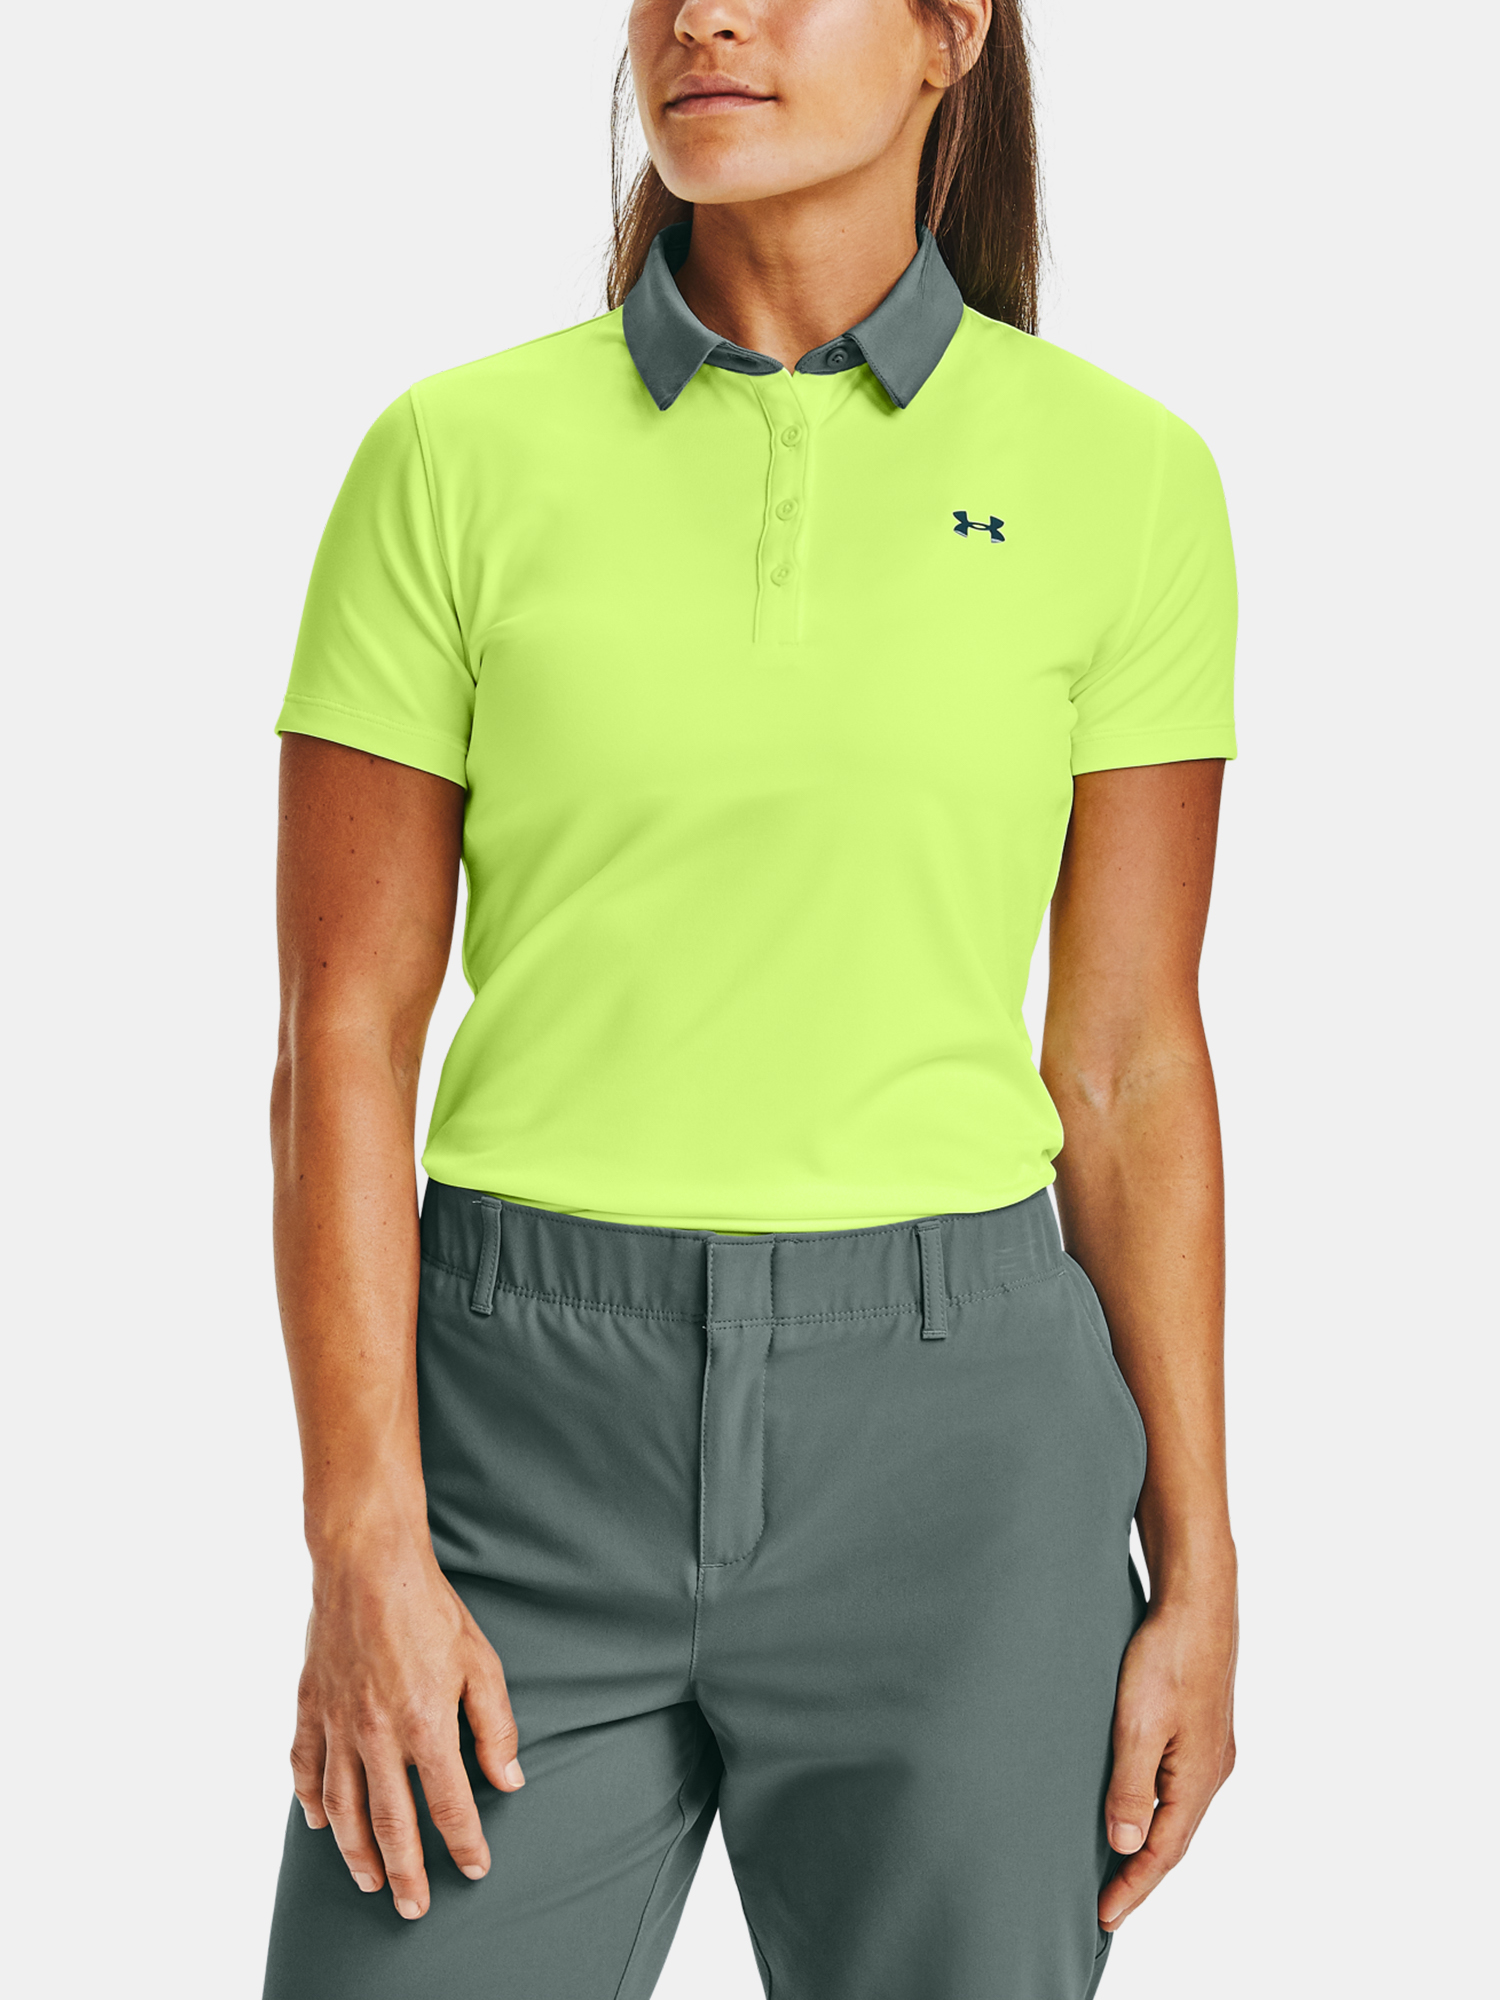 Tričko Under Armour Zinger Short Sleeve Polo (1)